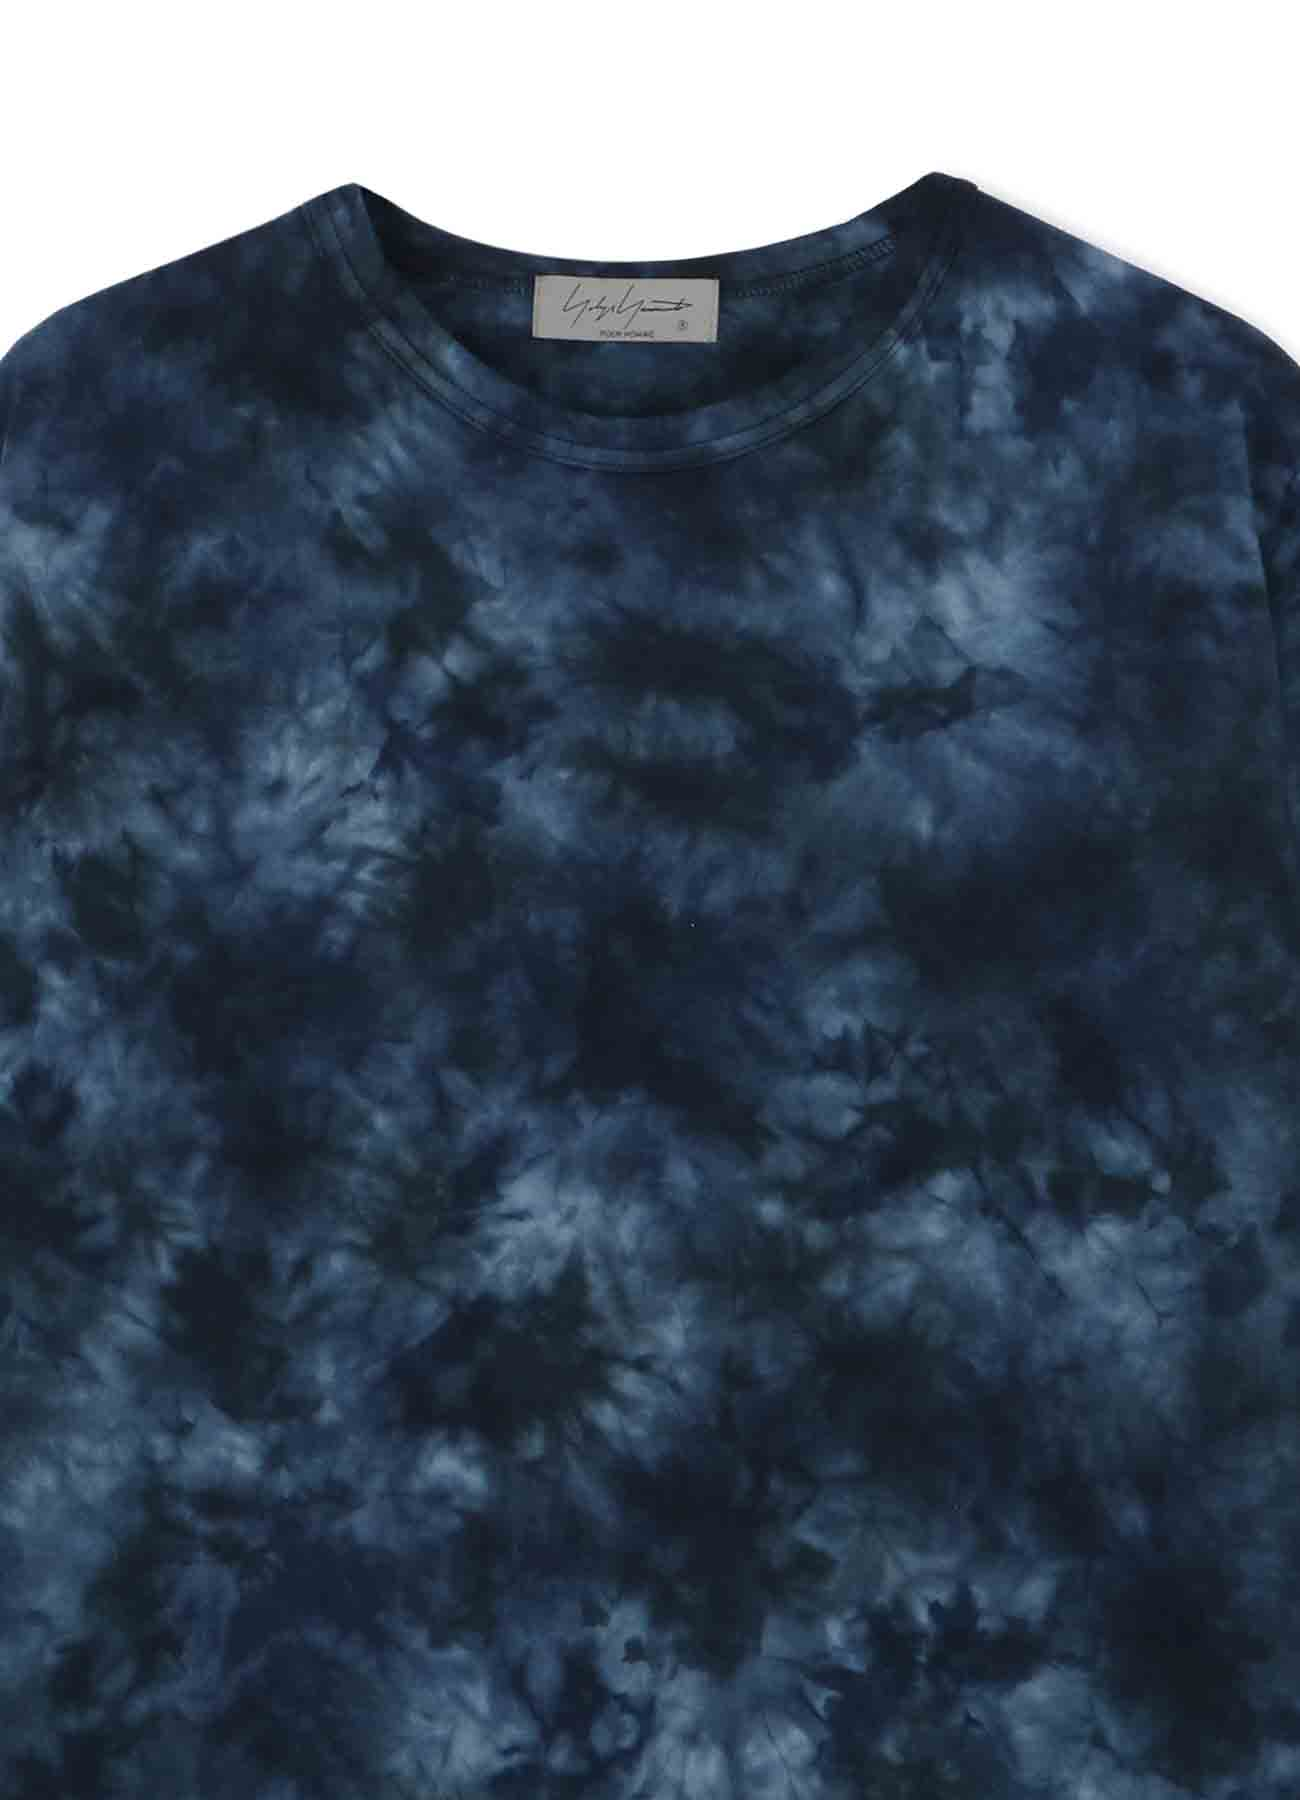 PS UNEVEN DYE FRONT BACK ROUND NECK LONG SLEEVES